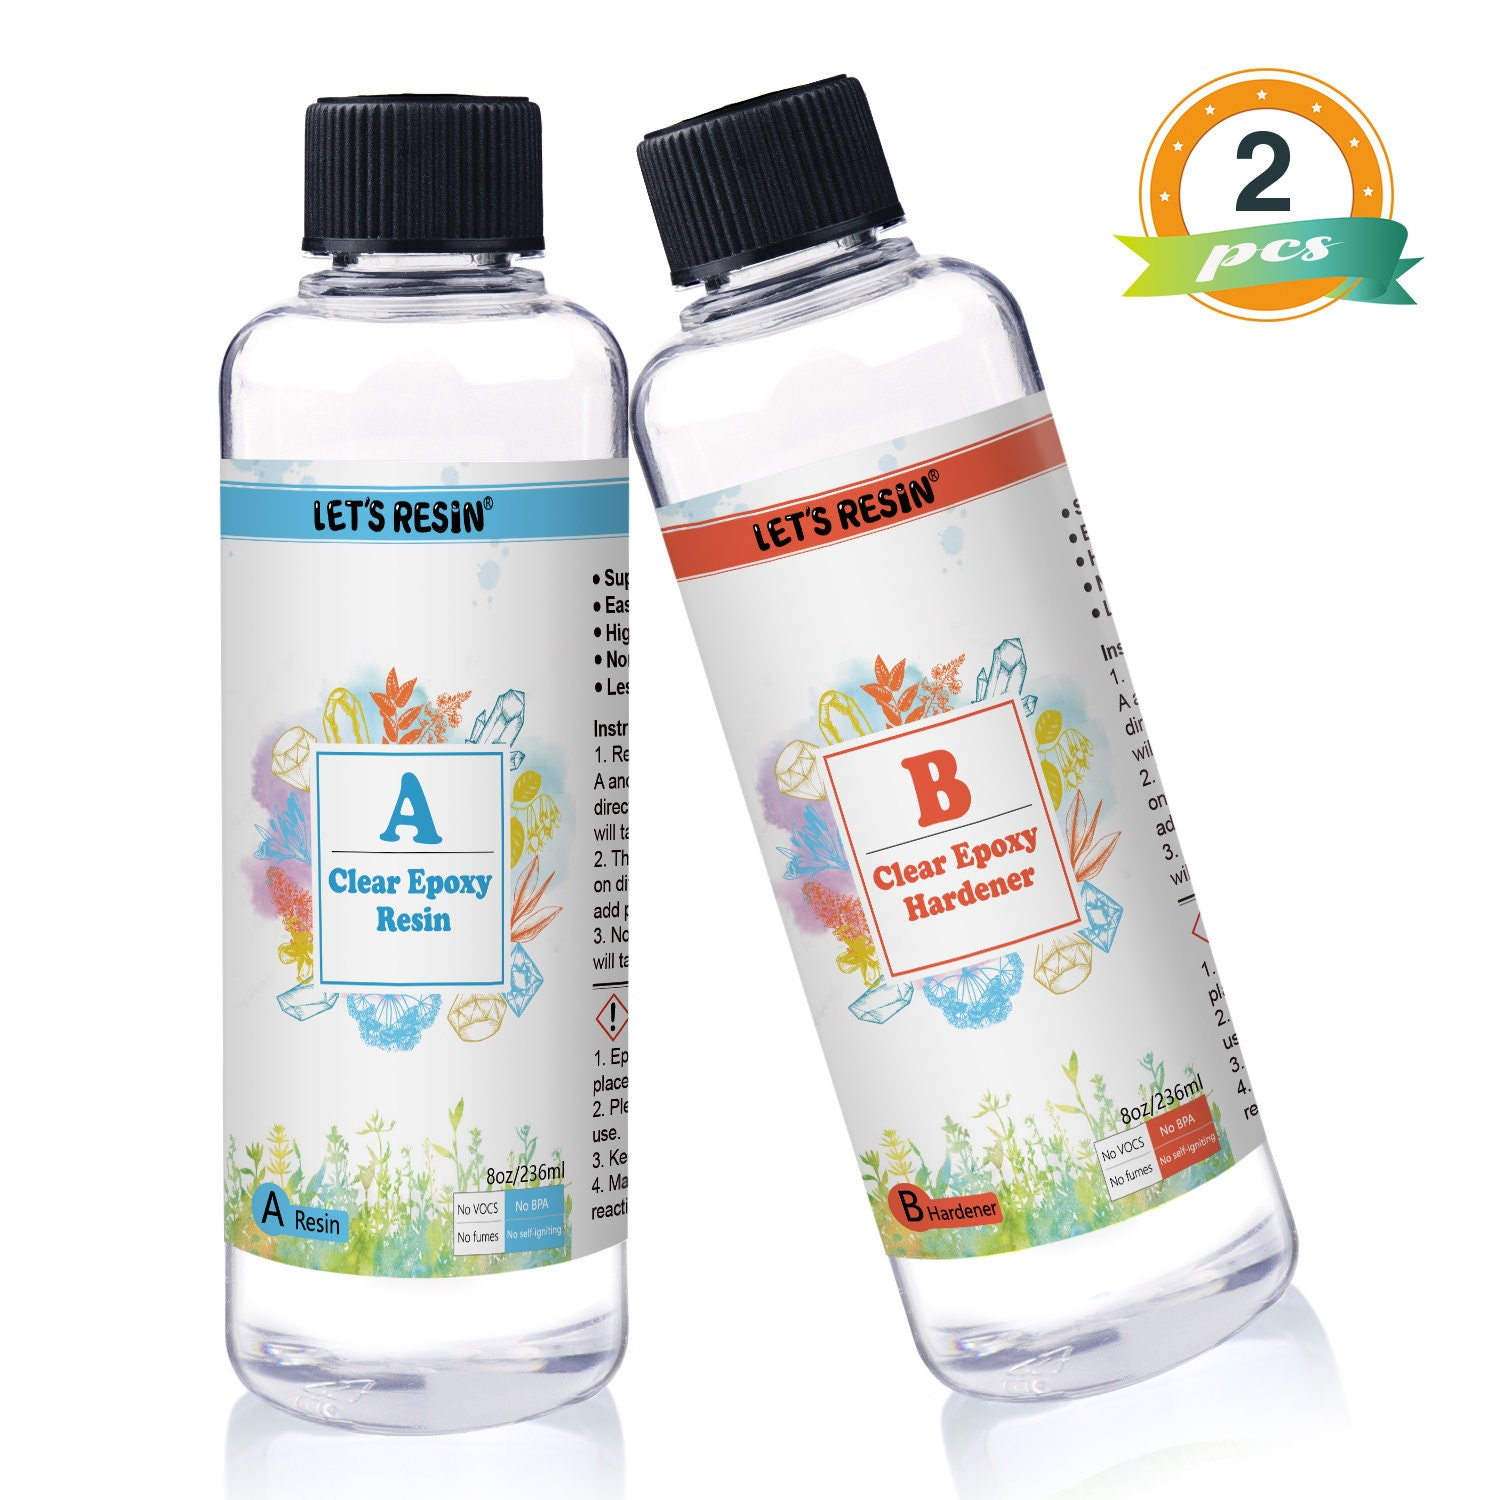 Clear Epoxy Resin - 1:1 Ratio Art Resin for Casting, Coating, Resin Crafts–  Non-Toxic -16 oz- (JY-ABJ11BL-K)